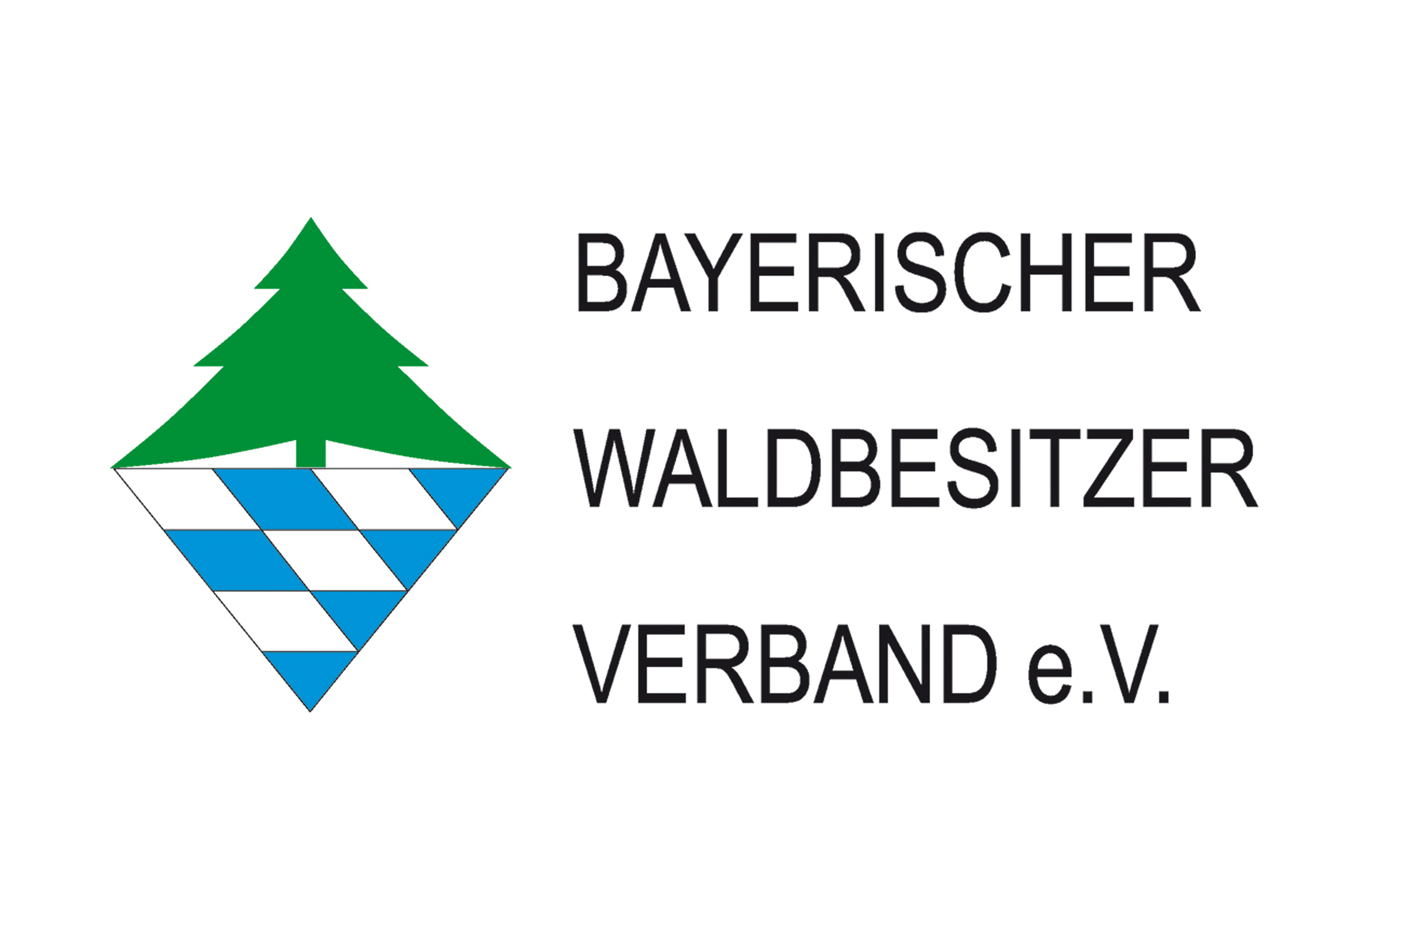 Quelle: www.bayer-waldbesitzerverband.de